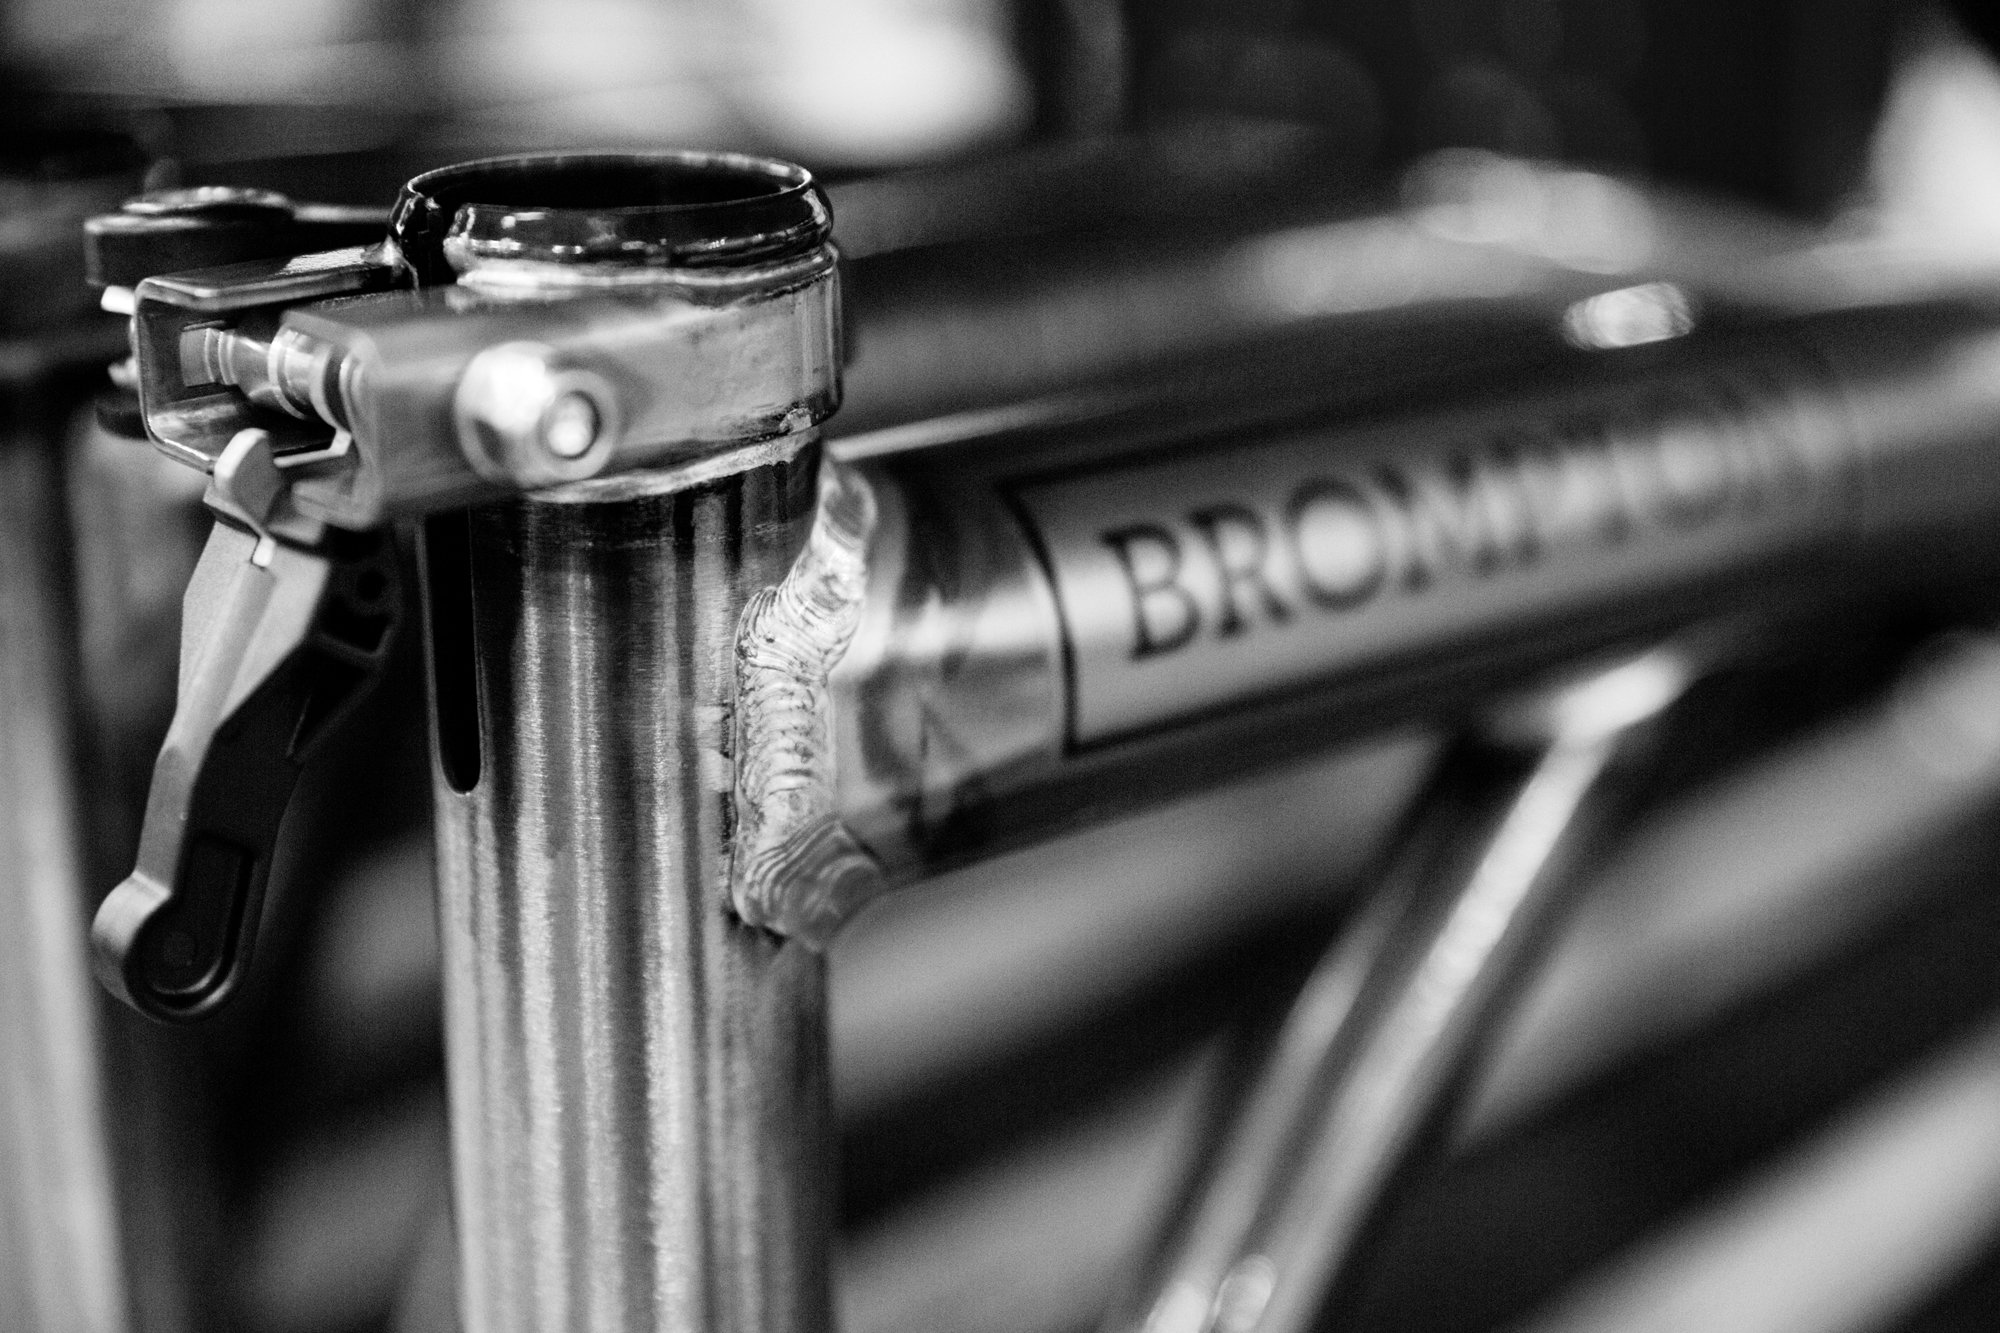 Brompton cycle, folding bike, Brompton Bicycle, manufacturing, british made bikes, bikes, cycling, brazing, Brompton